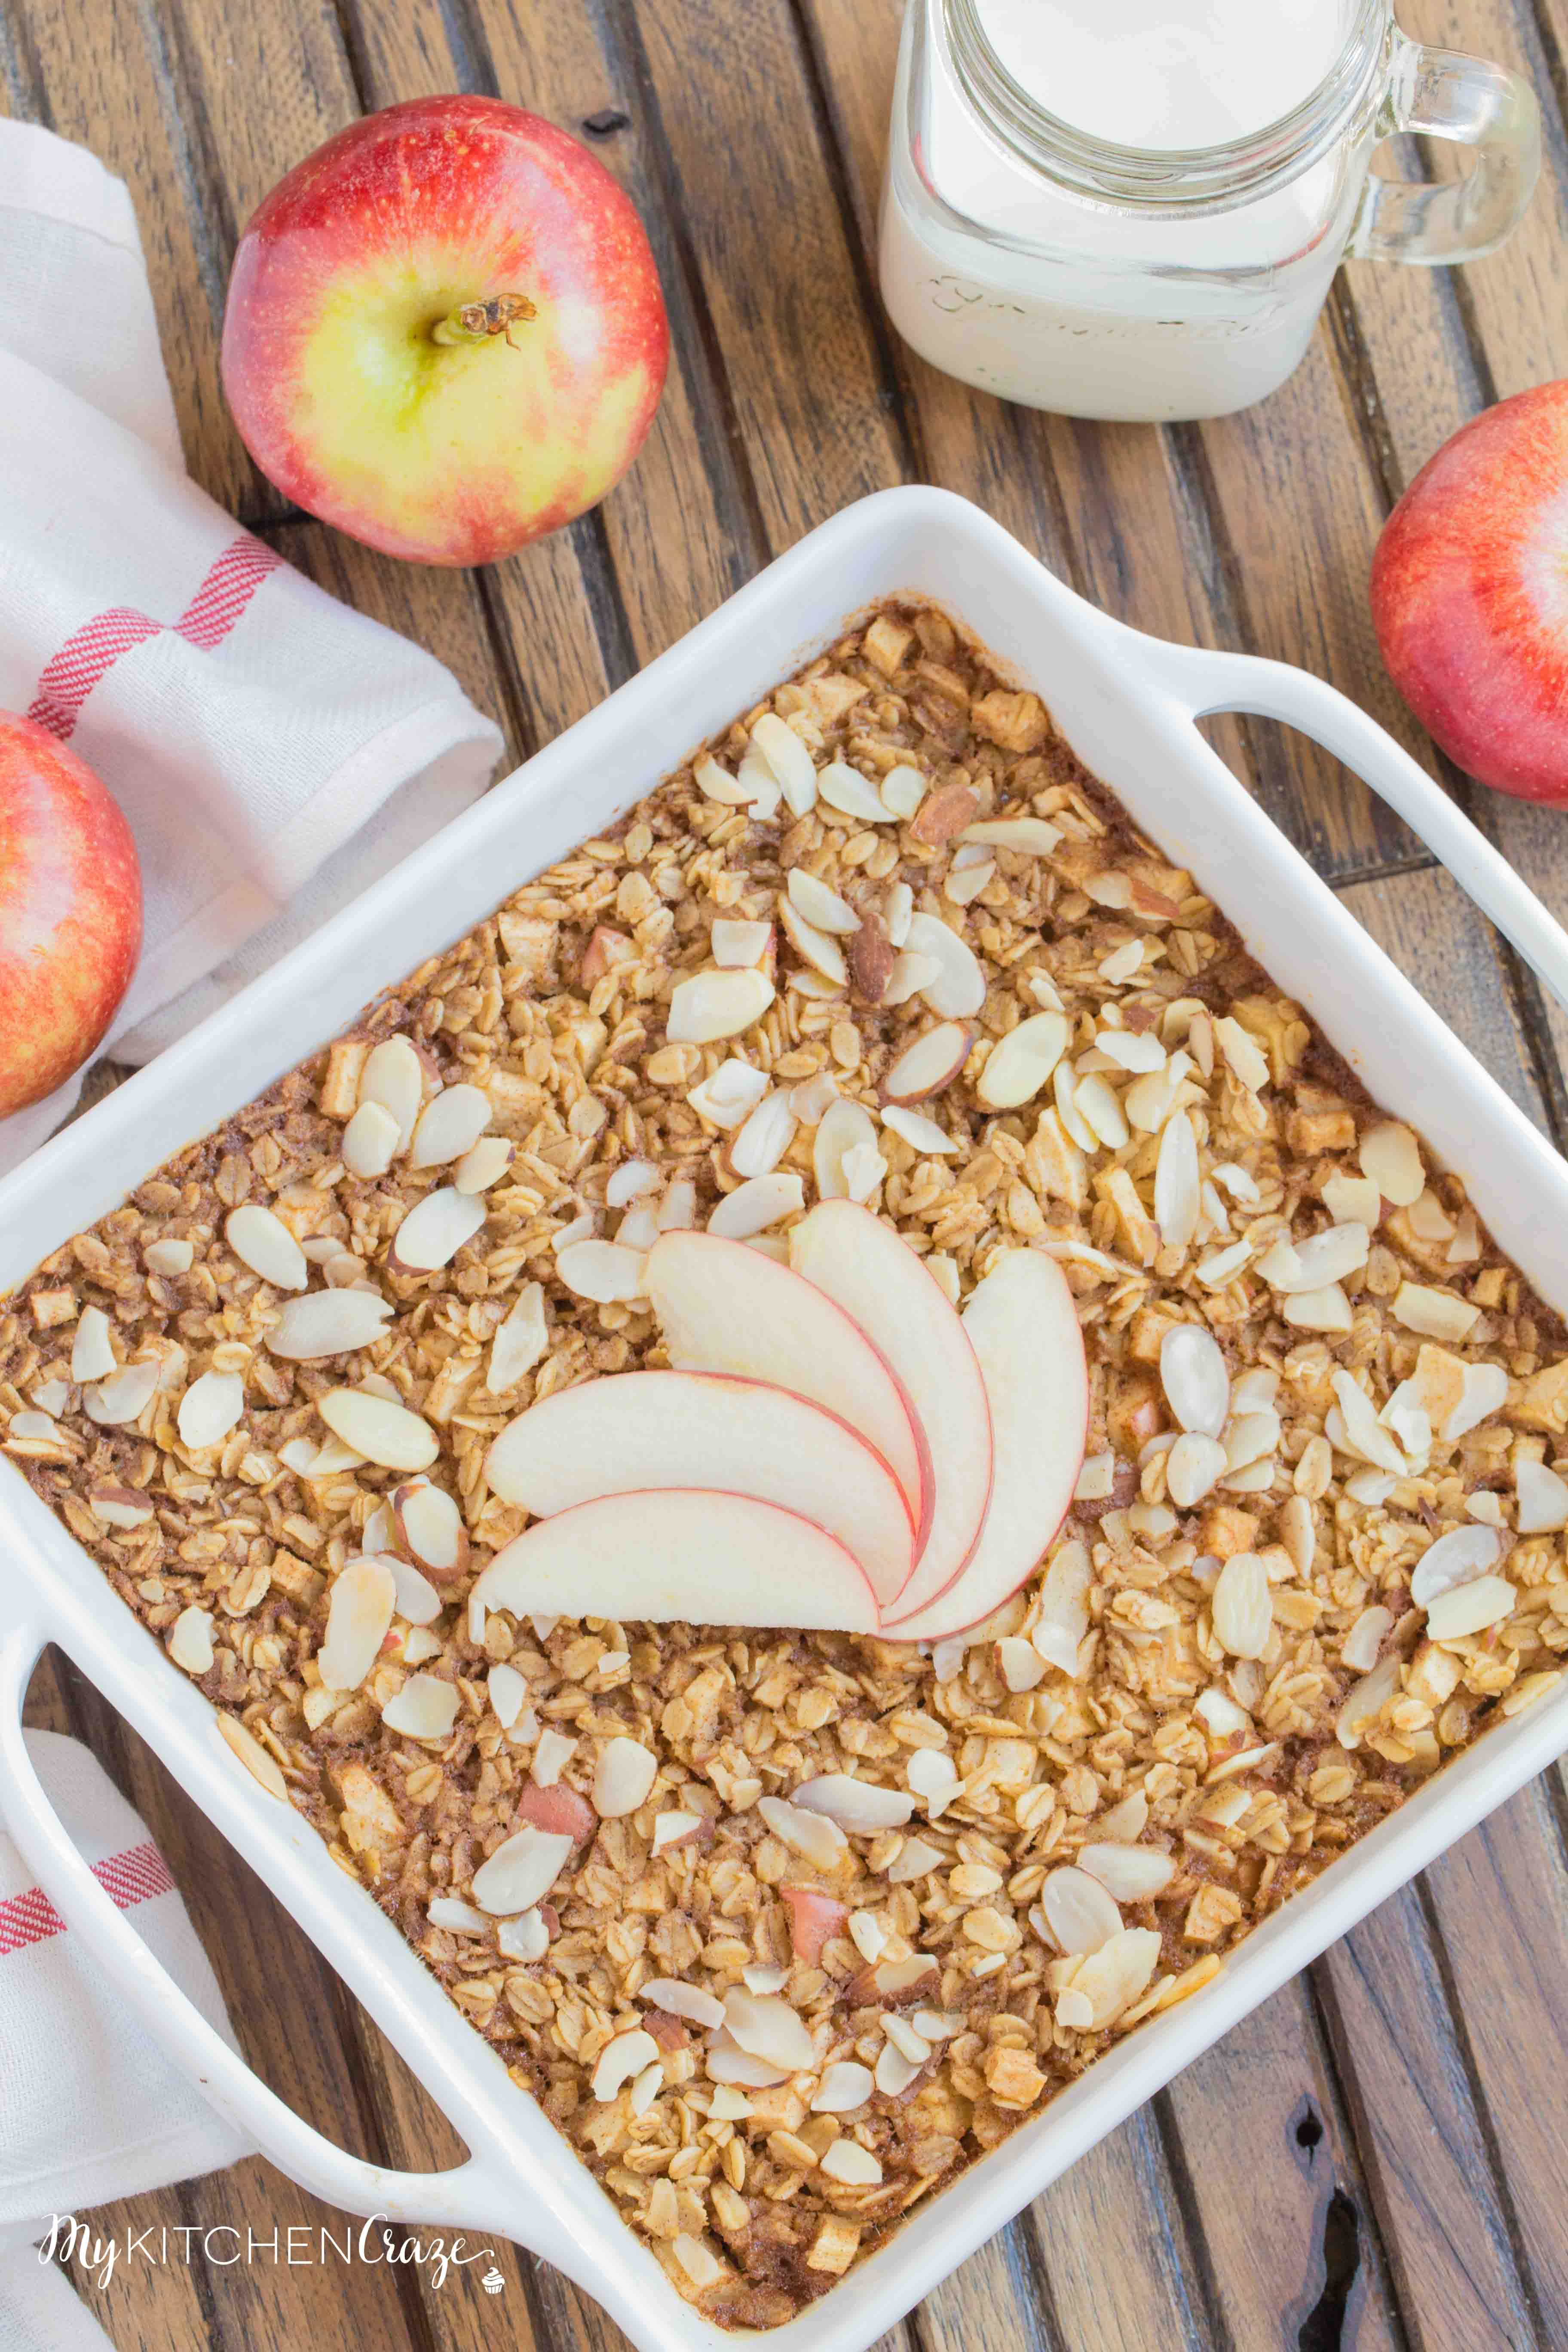 Apple Cinnamon Baked Oatmeal ~ mykitchencraze.com ~ This baked oatmeal is prepared within minutes and is perfect for a hearty breakfast!